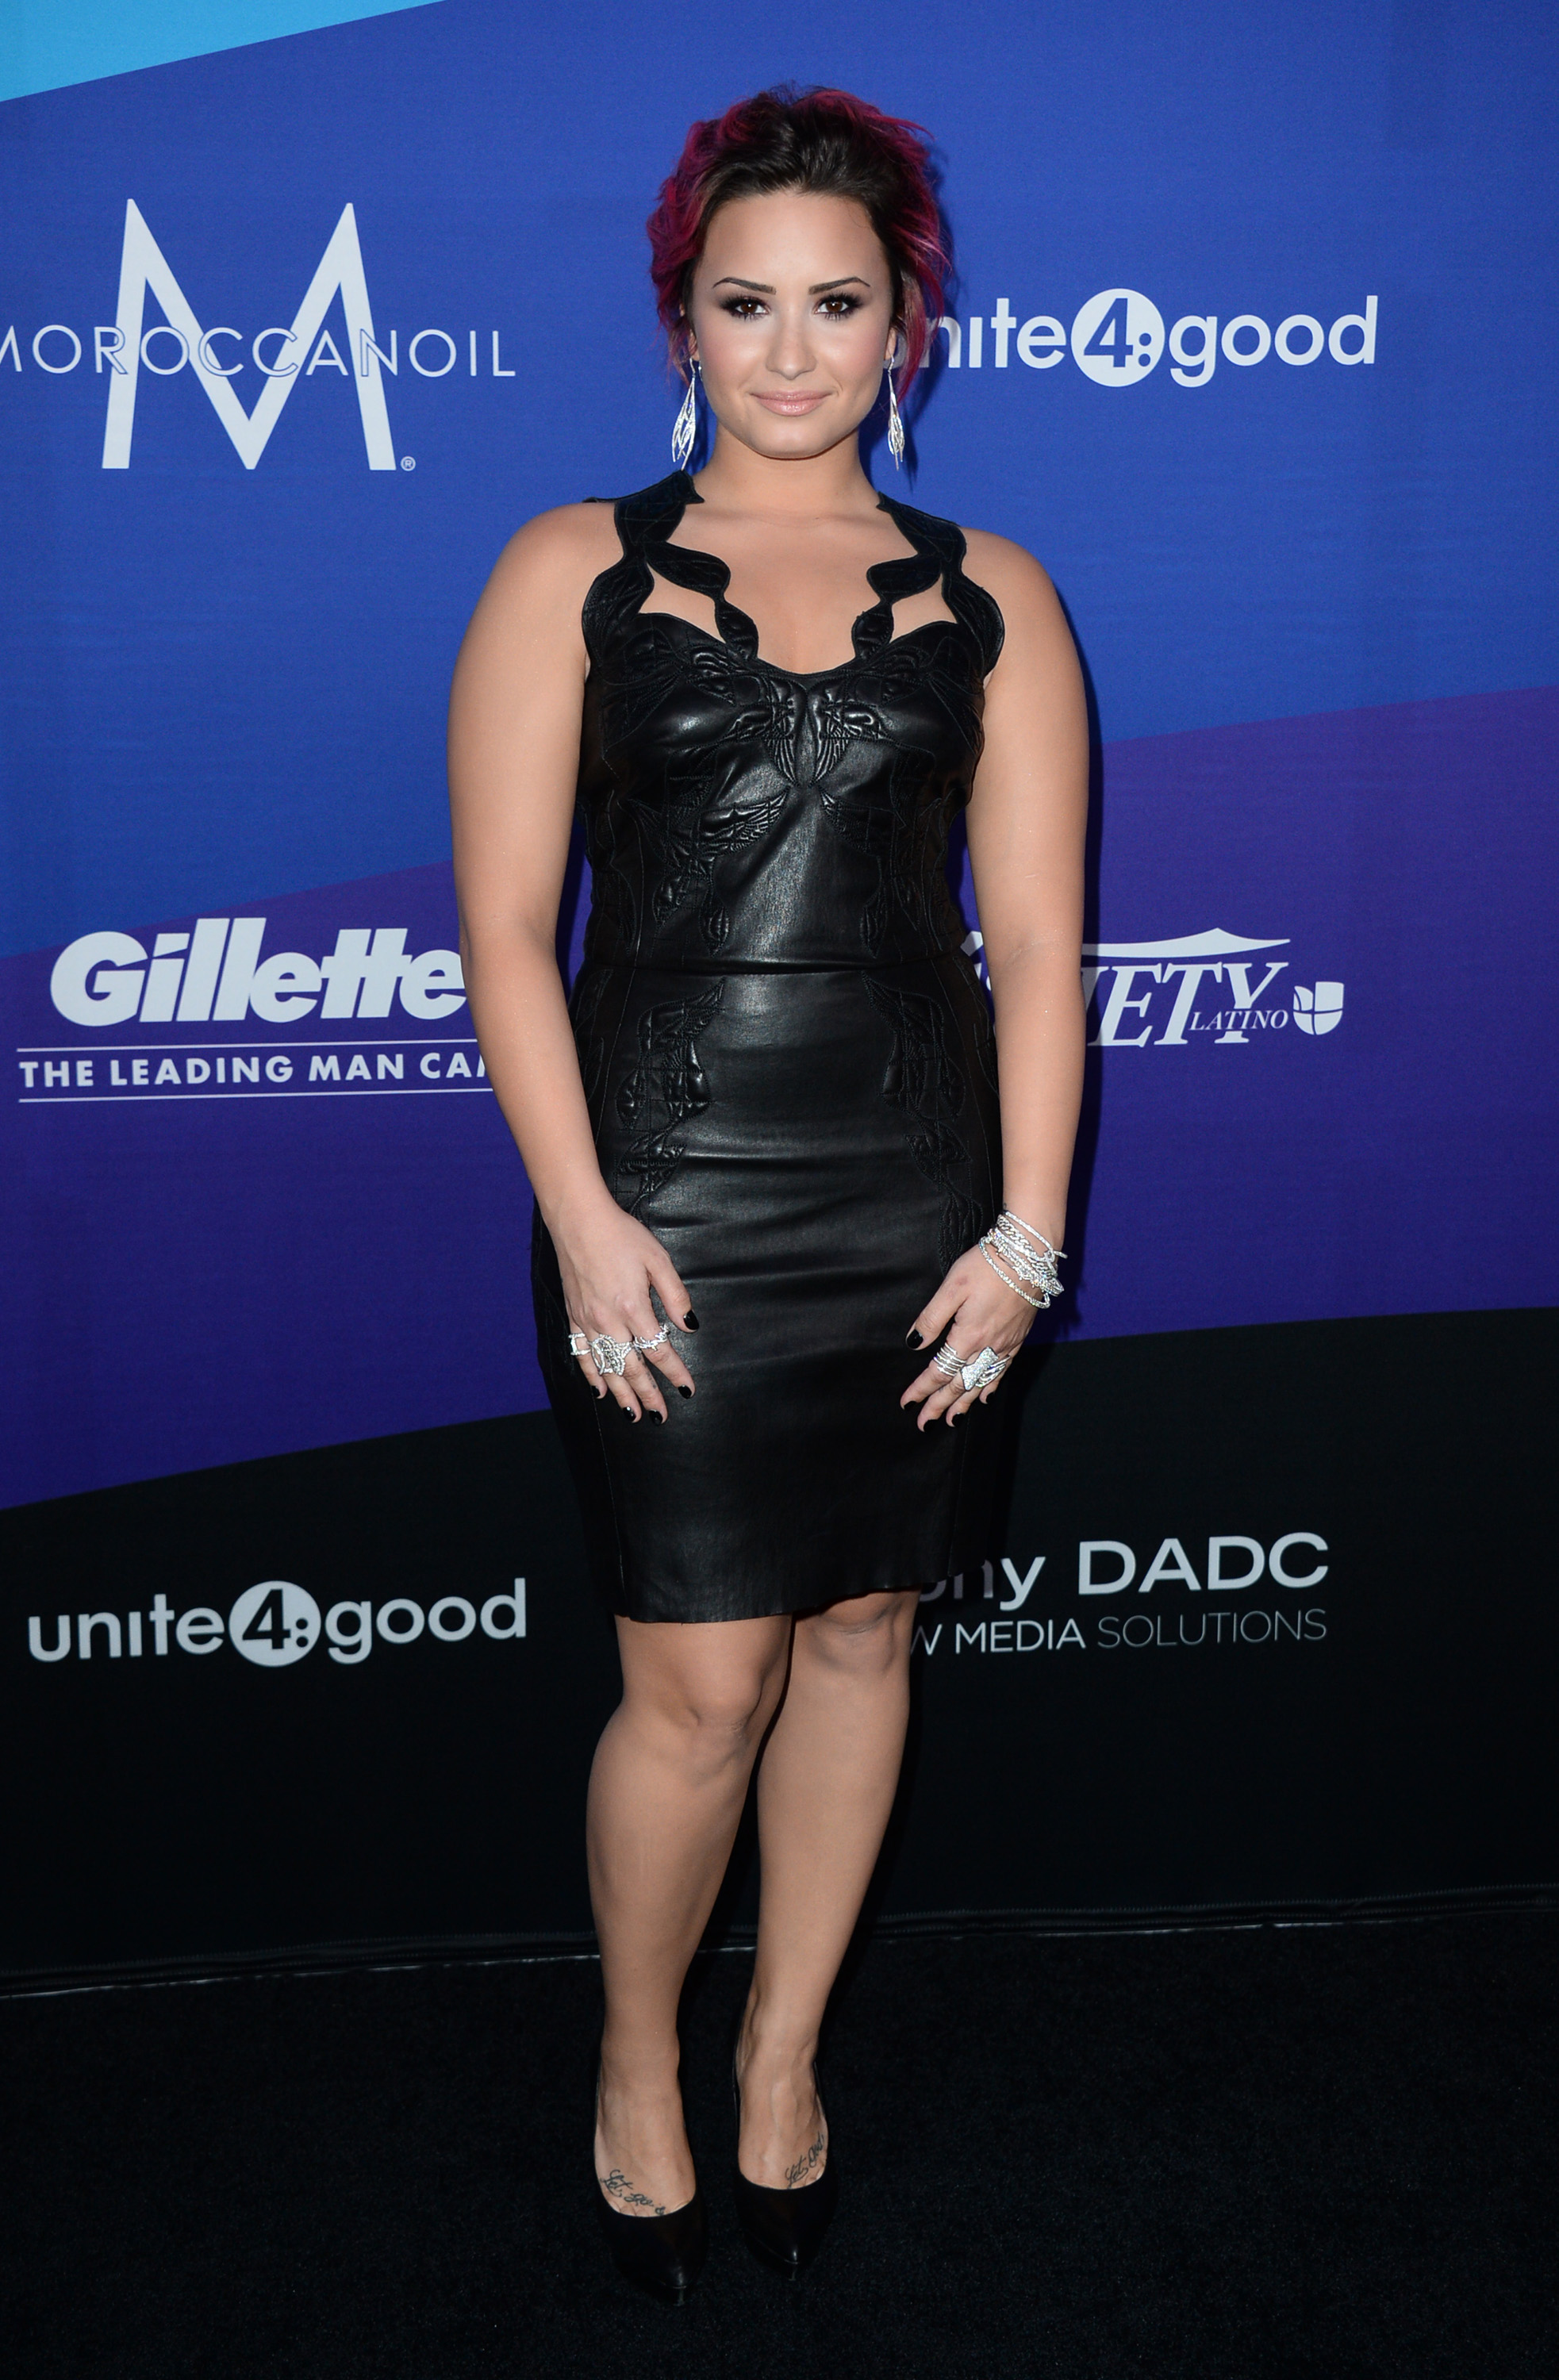 Honoree Demi Lovato Rocks Body Hugging Leather Dress At